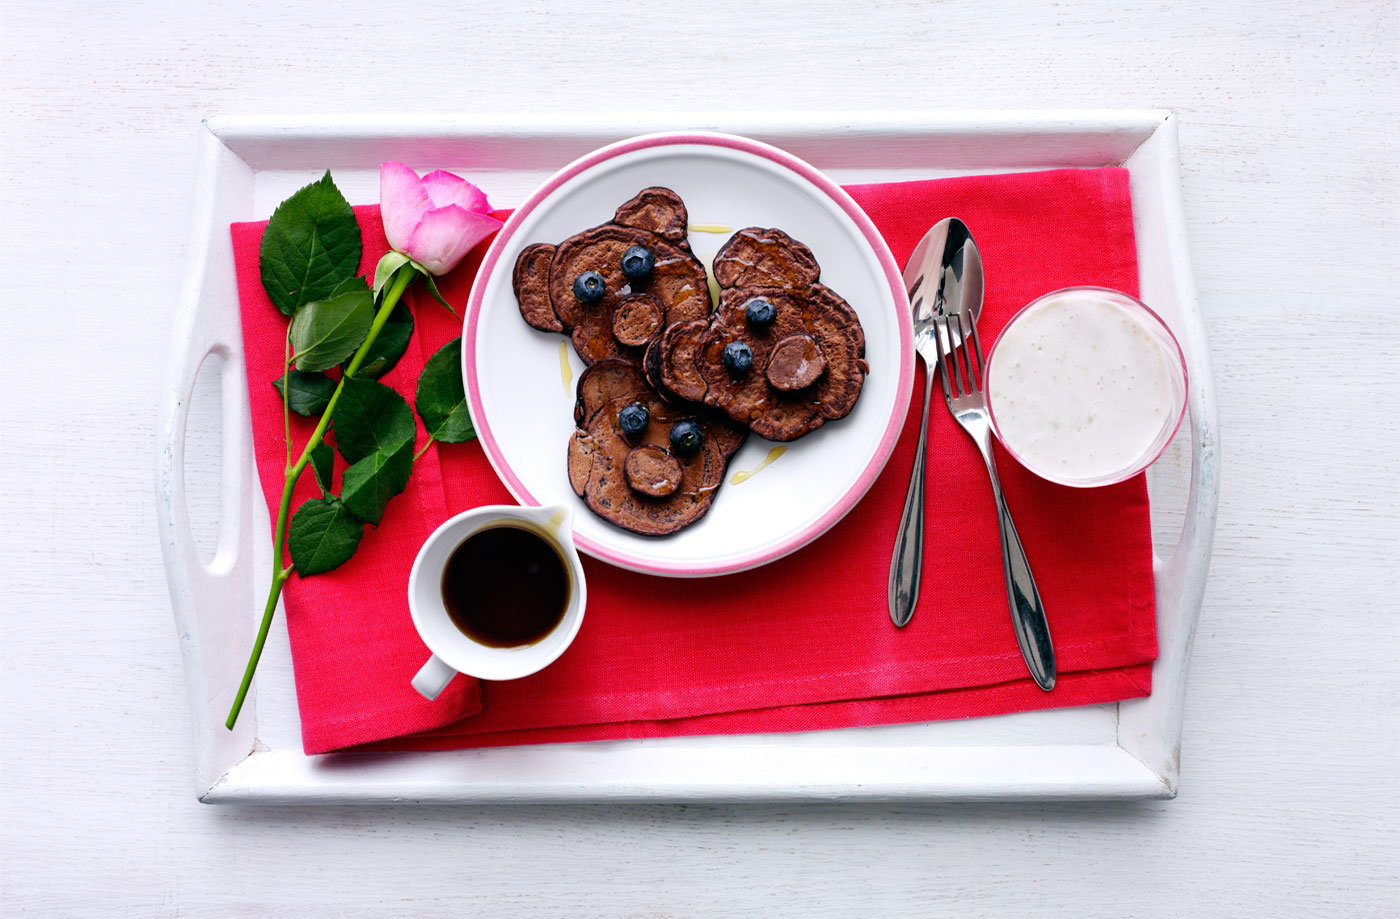 Chocolate mini teddy bear pancakes with berries and syrup recipe